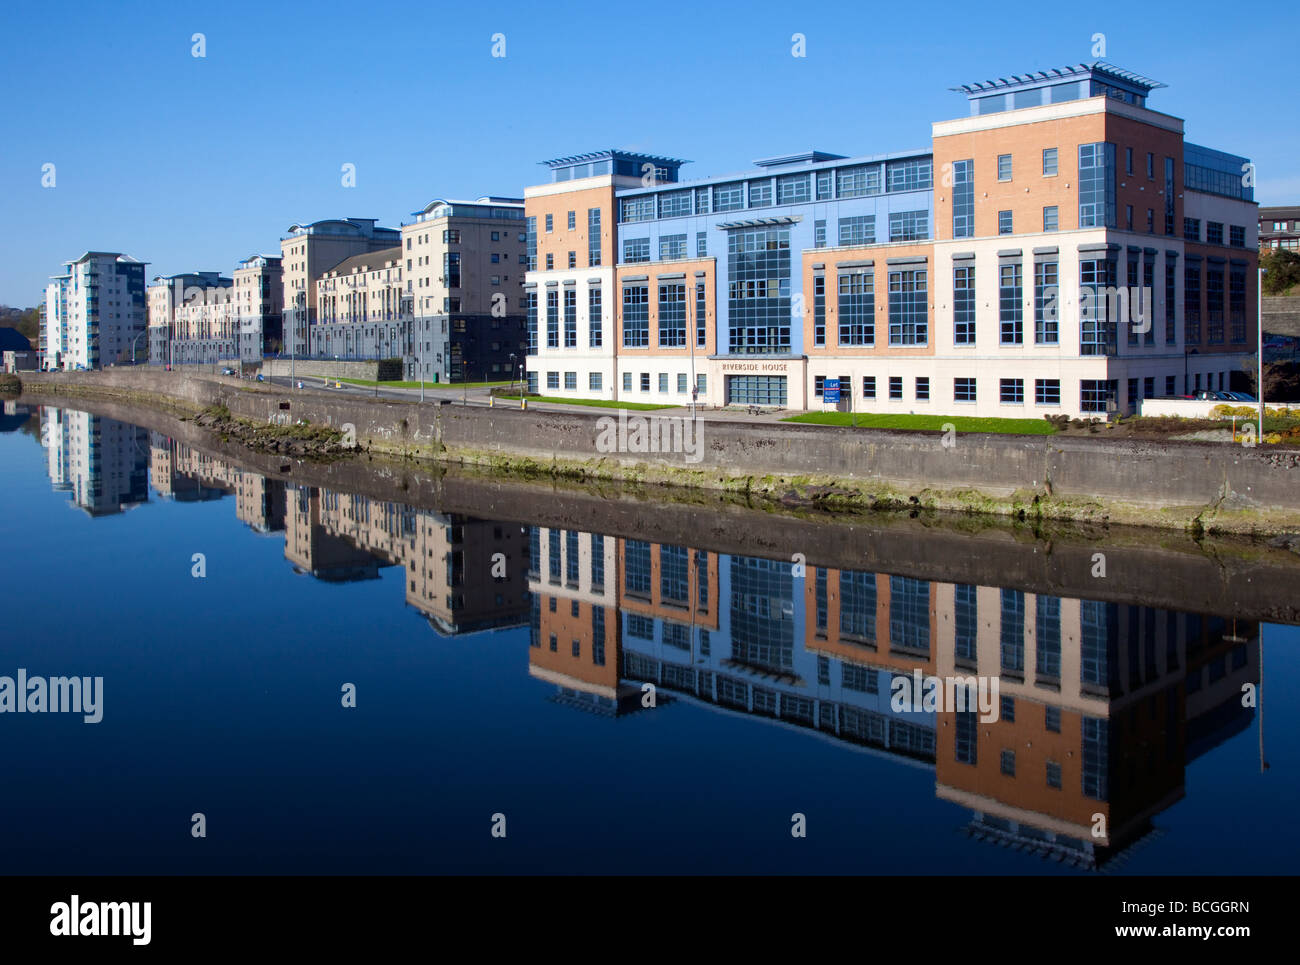 Reflections of Modern Office Buildings, business, architecture, urban development alongside the River Dee, Riverside - Stock Image